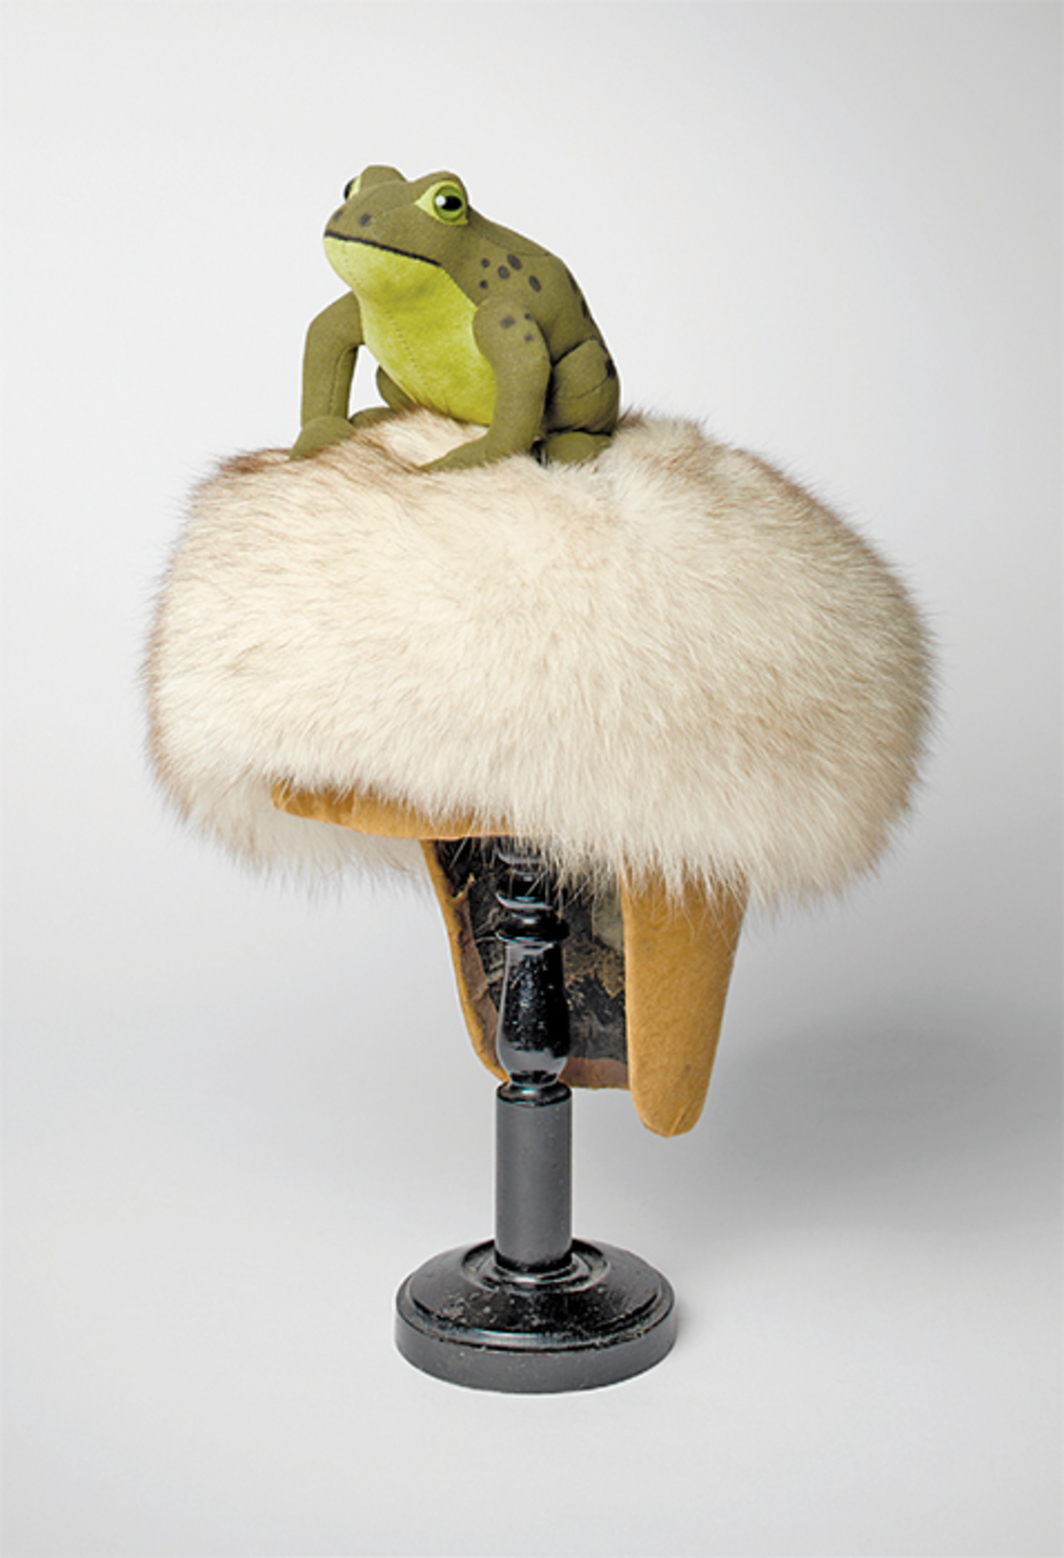 "Bethan Huws, Frog, 2011, wig stand, fur hat, toy frog, 17 × 11 × 11 3/4""."